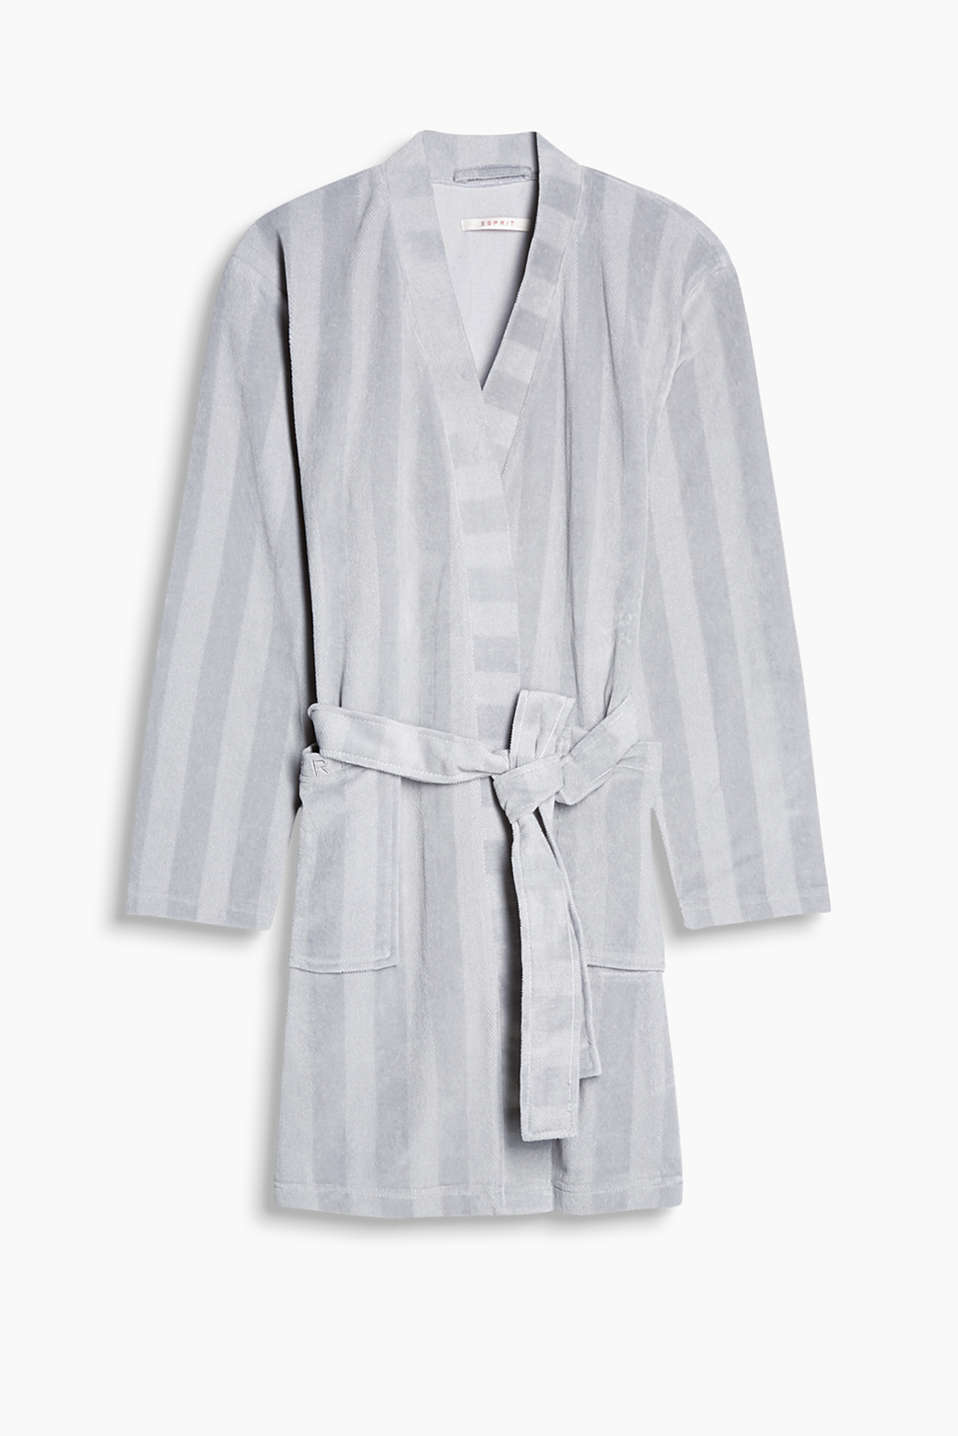 Dinah kimono in blended cotton, GREY, detail image number 5